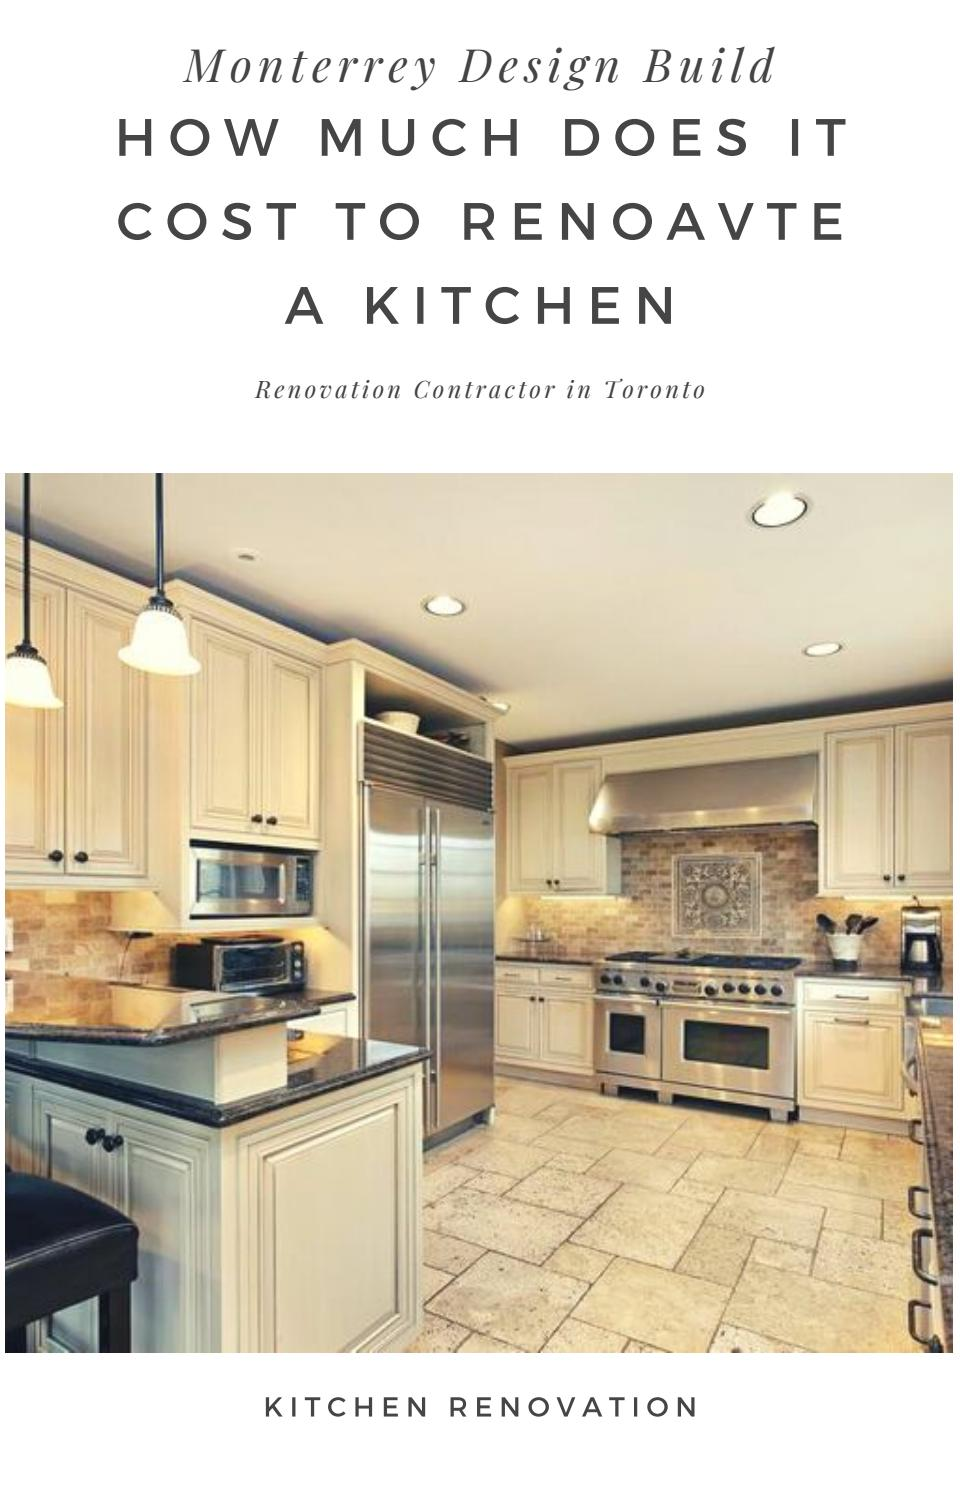 How Much Does It Cost To Renovate A Kitchen By Monterreydesignon Issuu